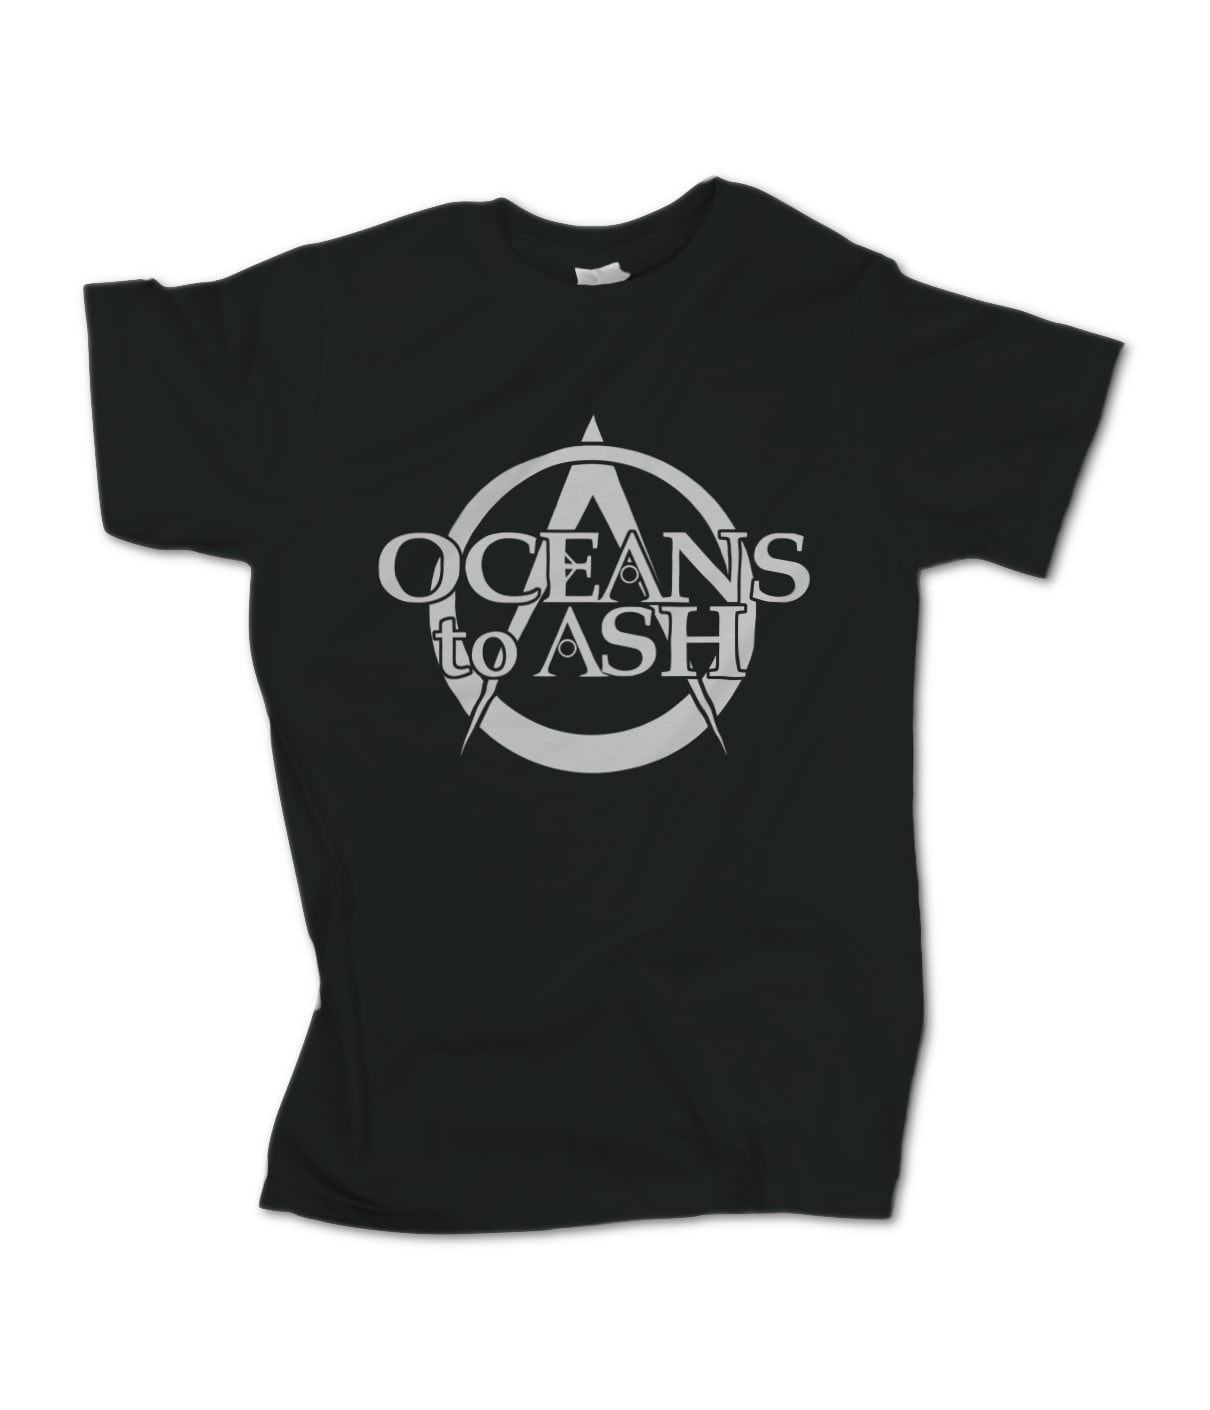 Oceans to ash oceans to ash logo tee 1525191347